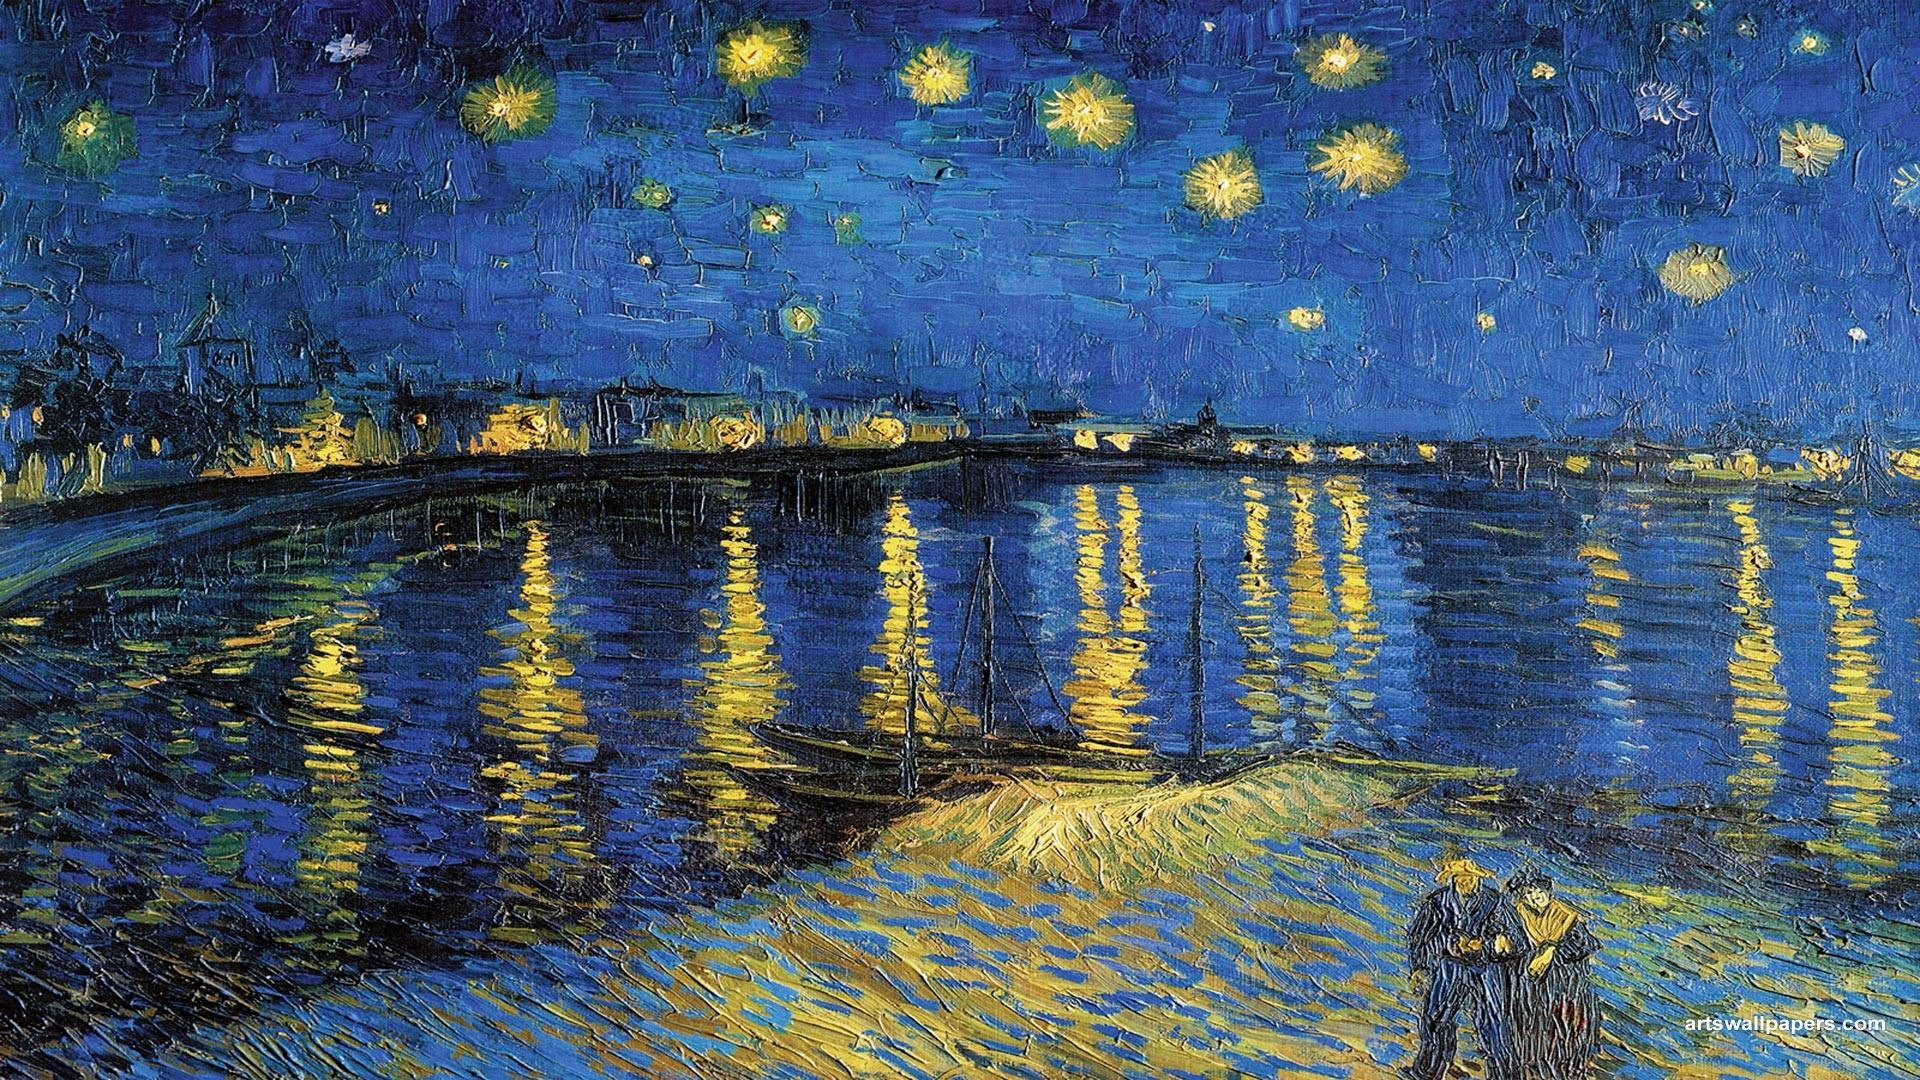 1920x1080 Wallpapers Starry Night Vincent Van Gogh Over The Rhone Wallpaper .